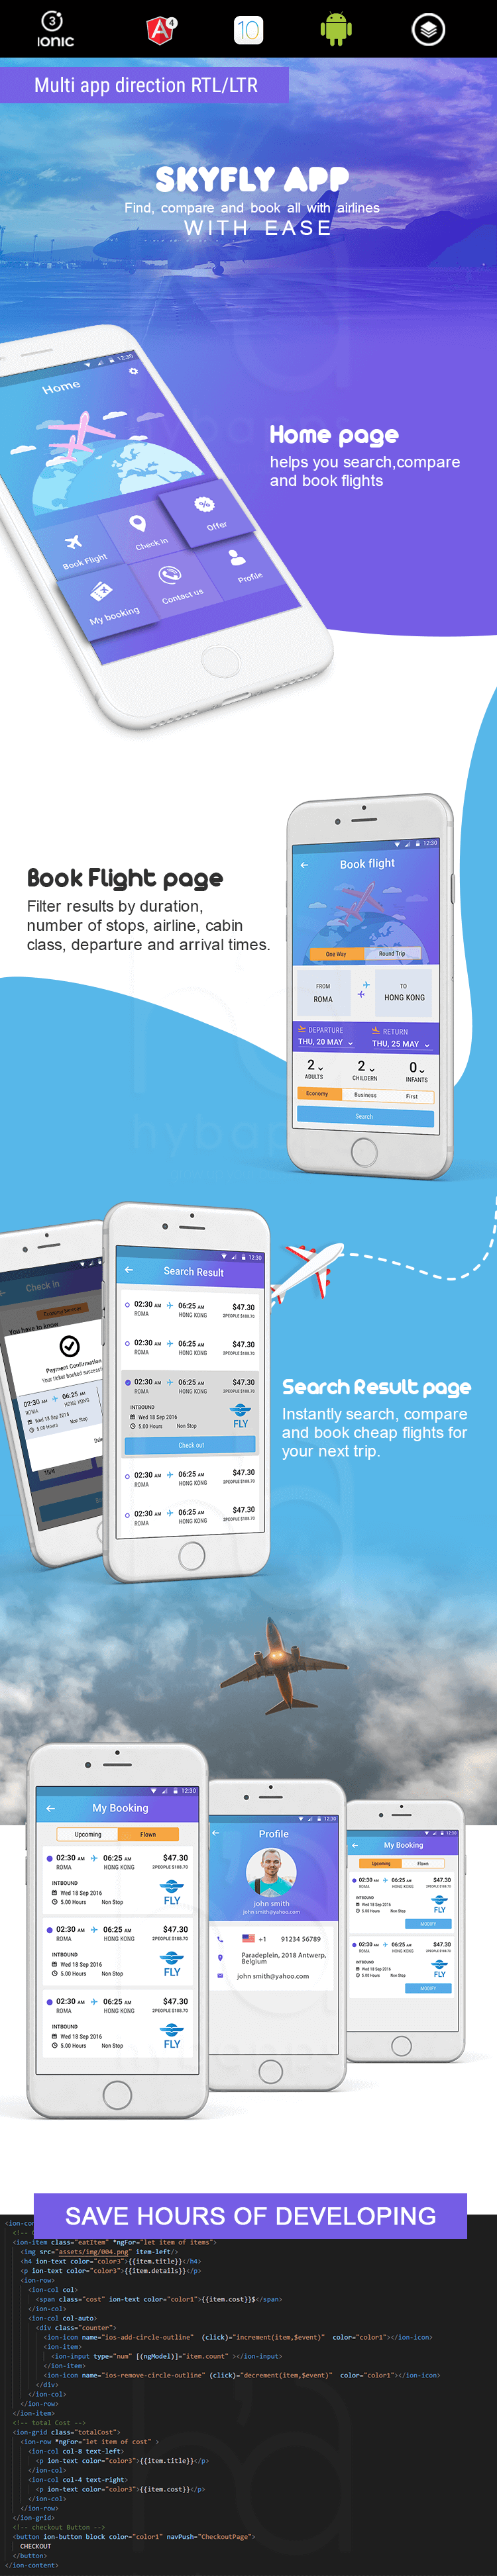 SkyFly - Airline reservation theme -ionic app theme